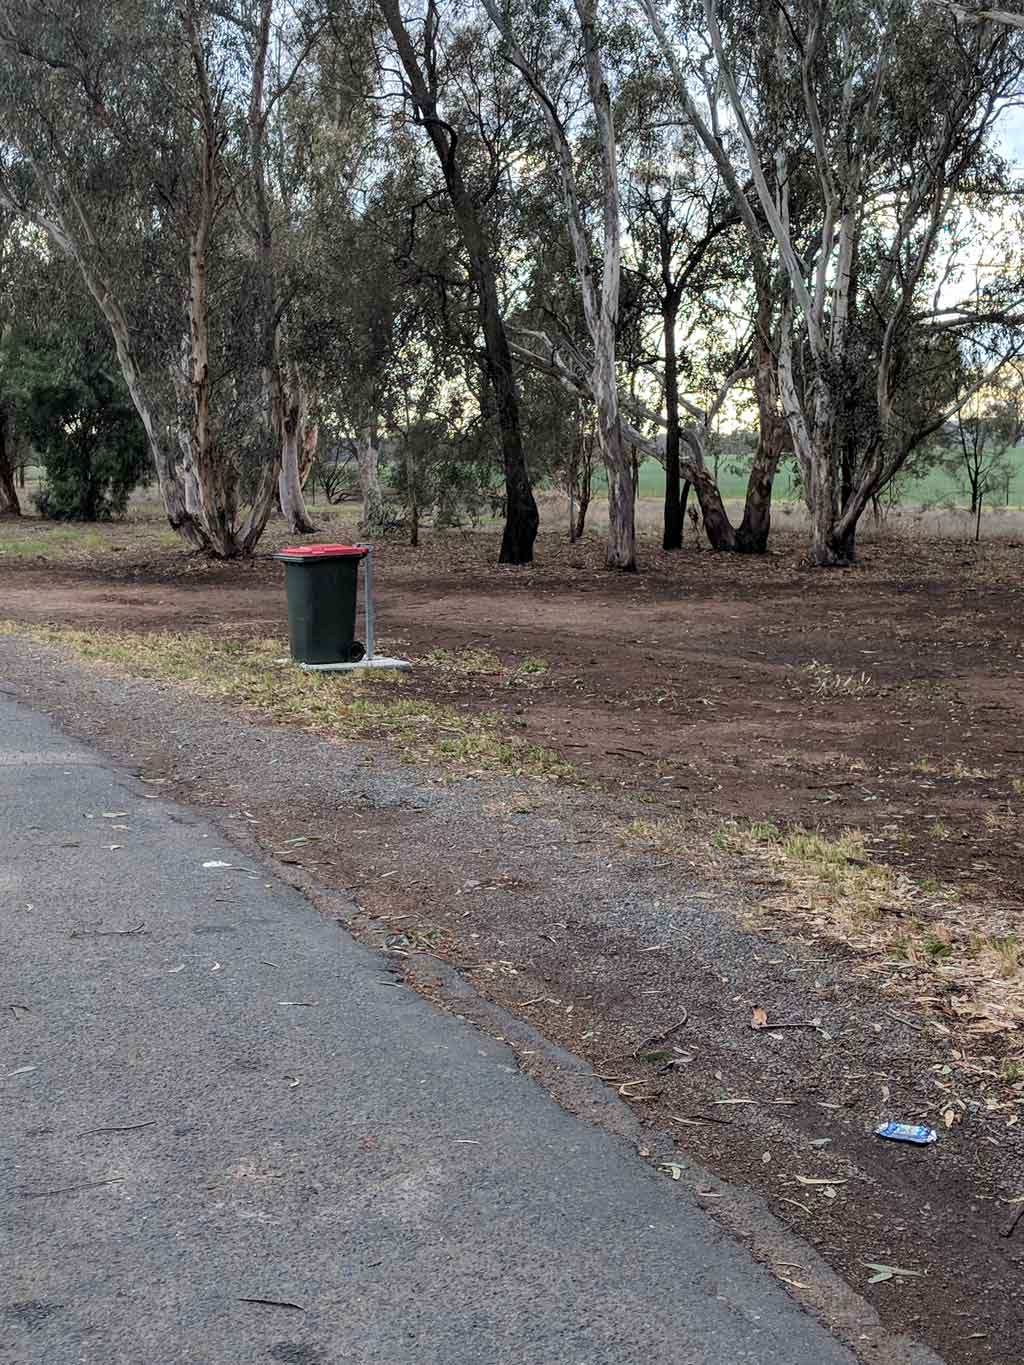 A bin in a rest area with crushed can in the foreground